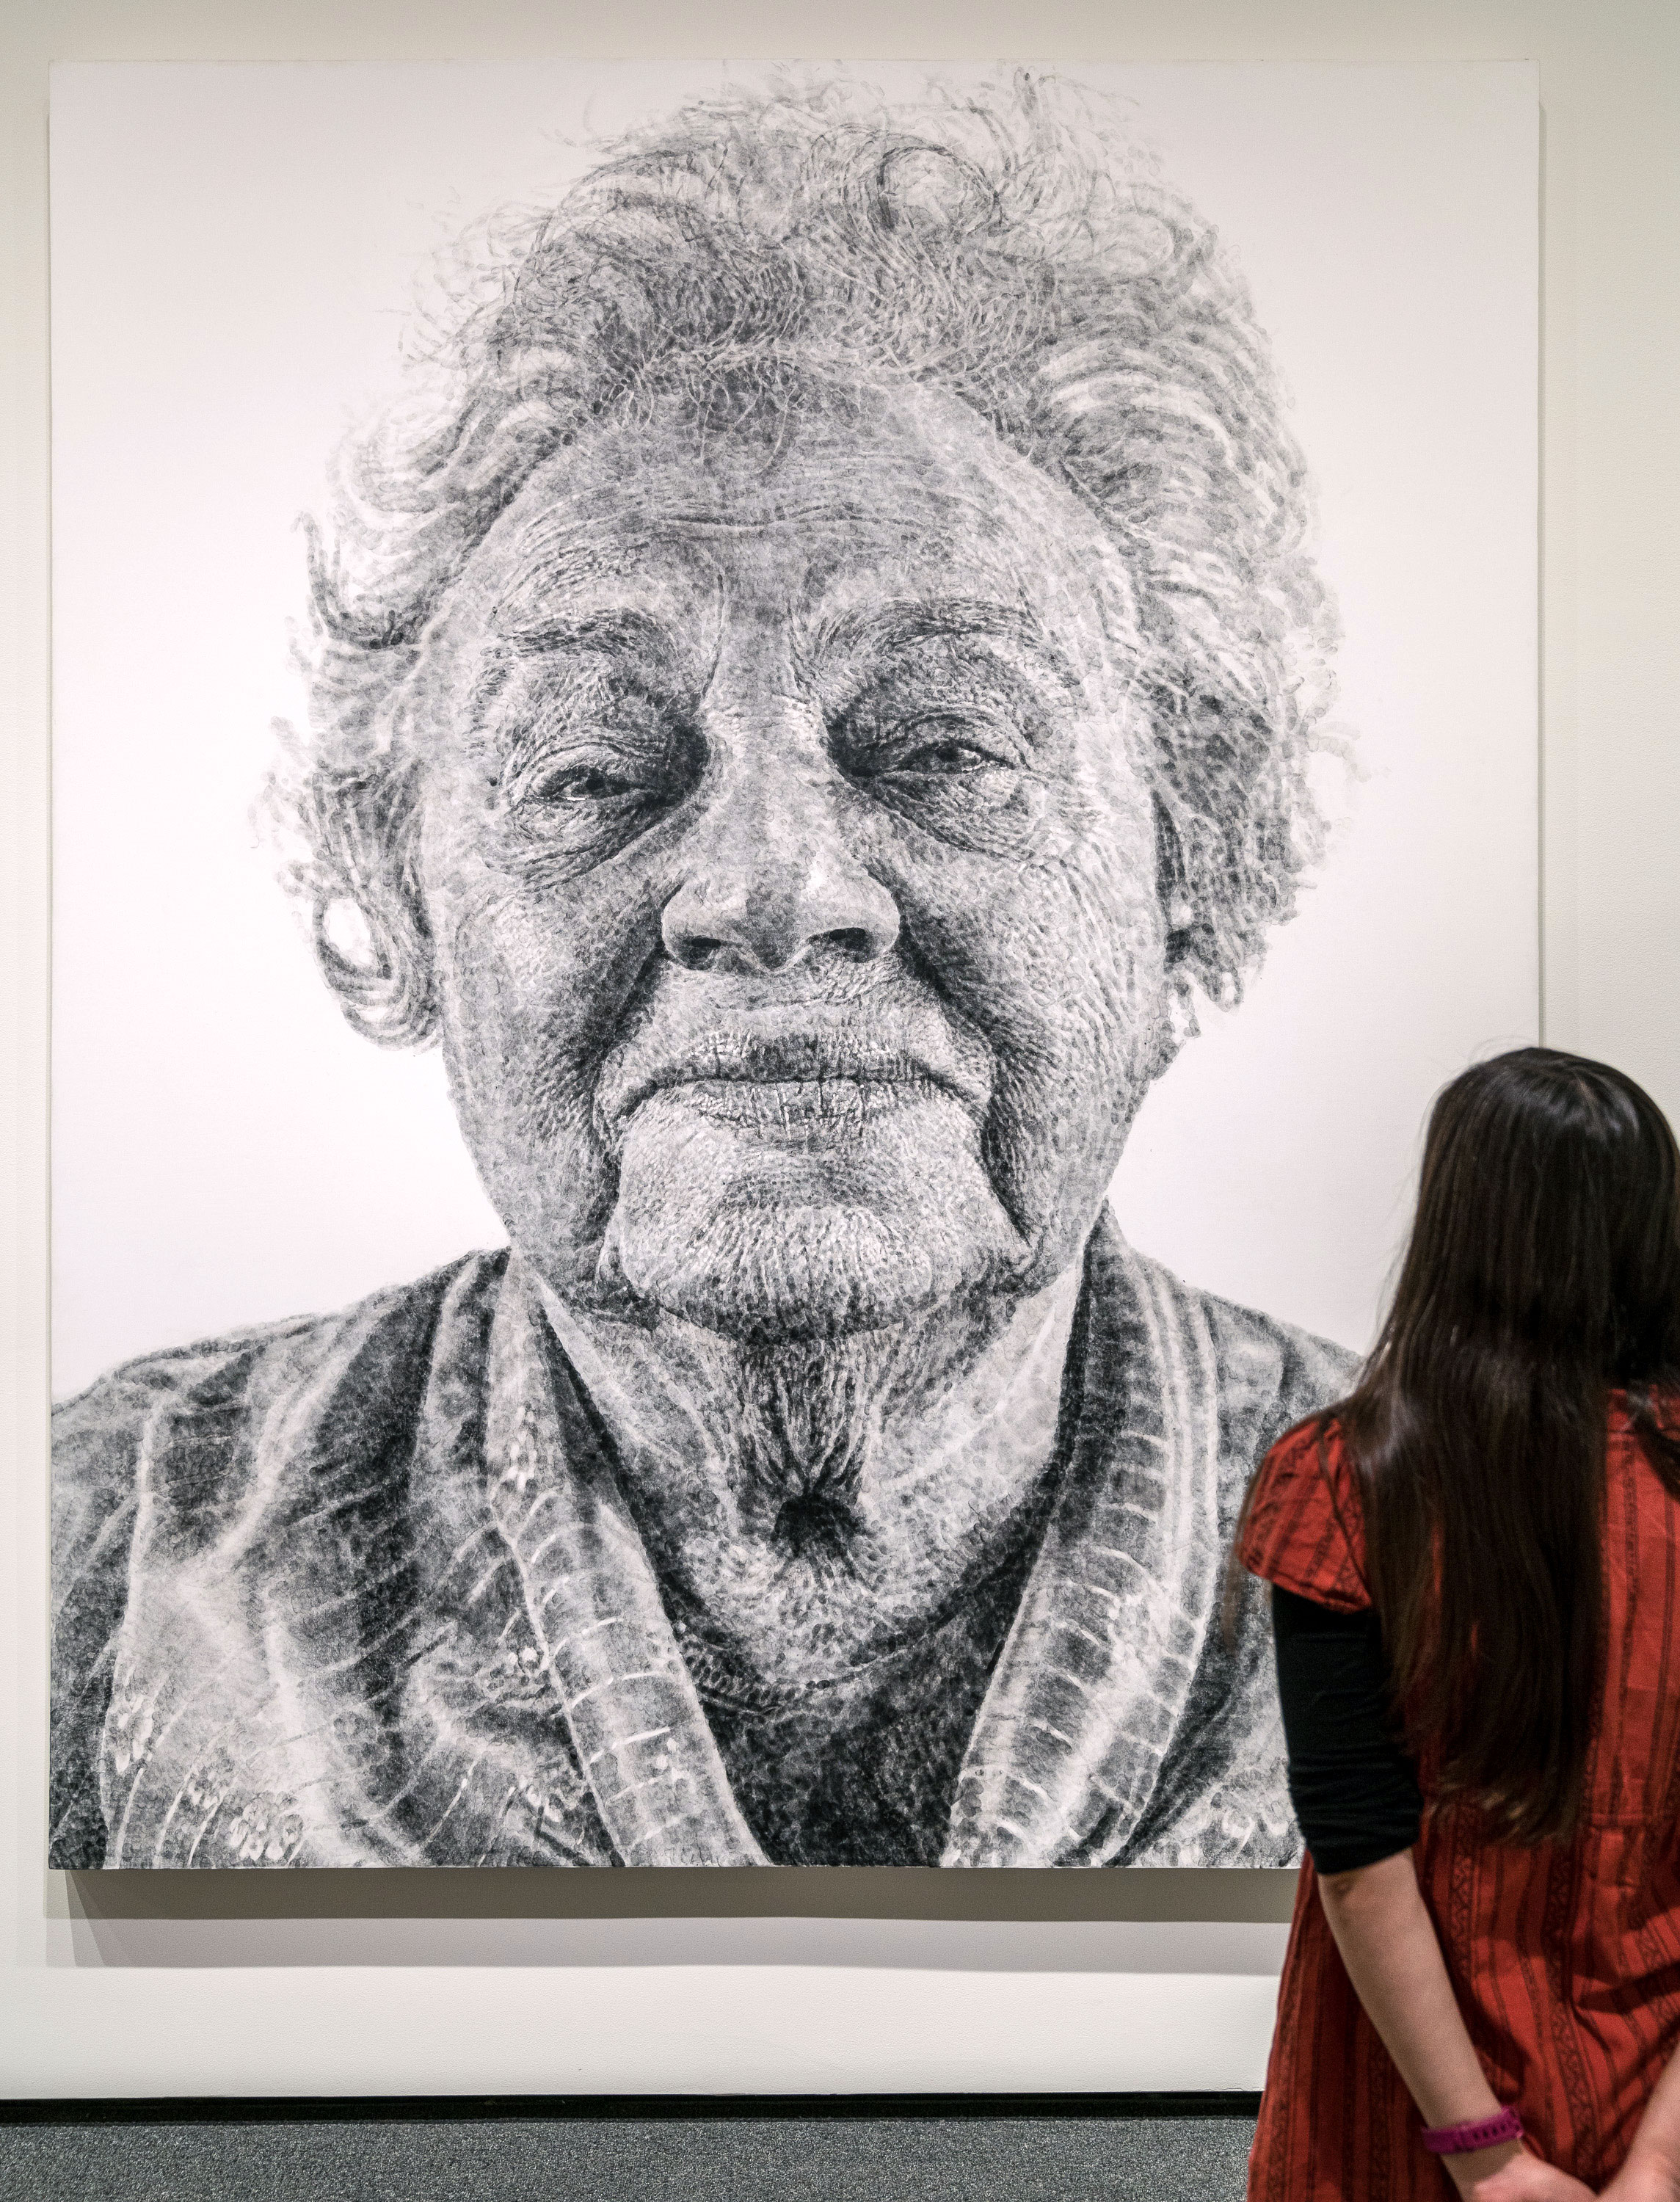 Fanny/Fingerpainting by Chuck Close in the National Gallery of Art, Washington, DC.